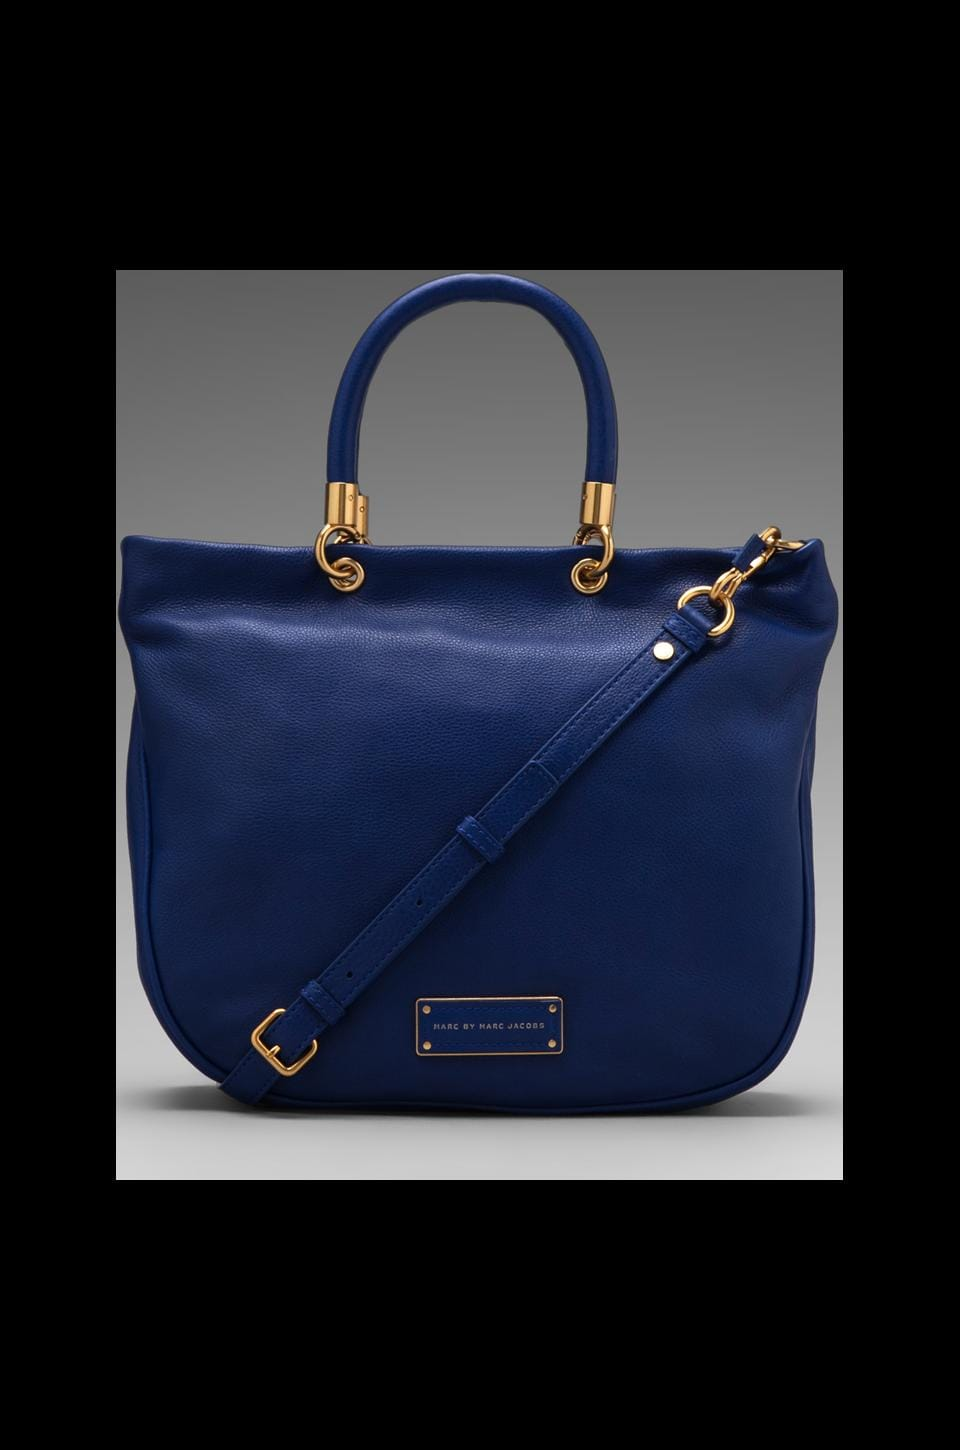 Marc by Marc Jacobs Too Hot to Handle Mini Shopper Tote in Bauhaus Blue